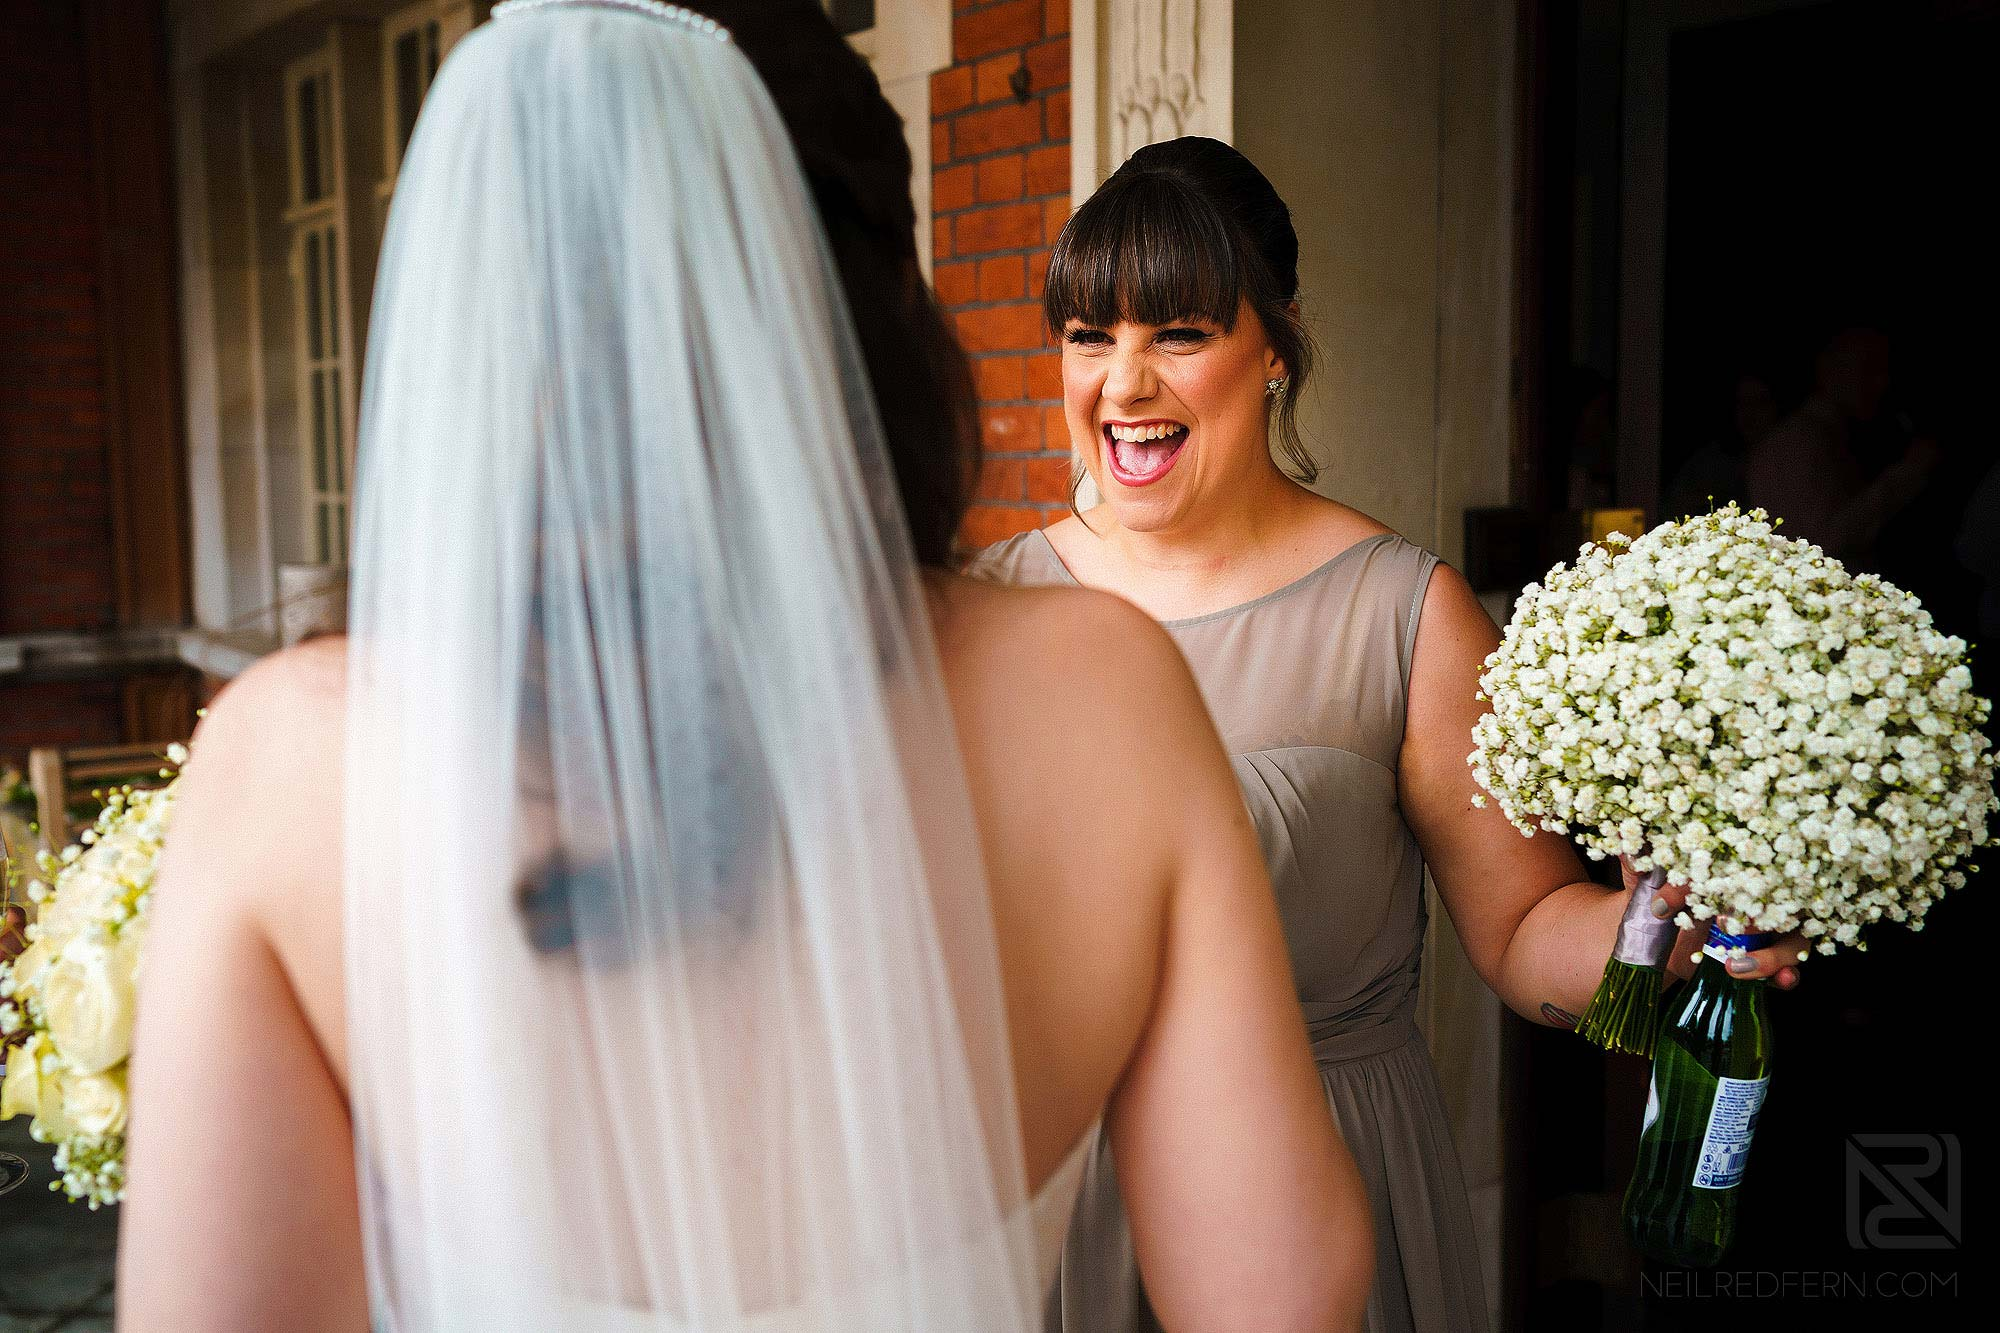 bridesmaid congratulating bride after wedding ceremony at Eaves Hall